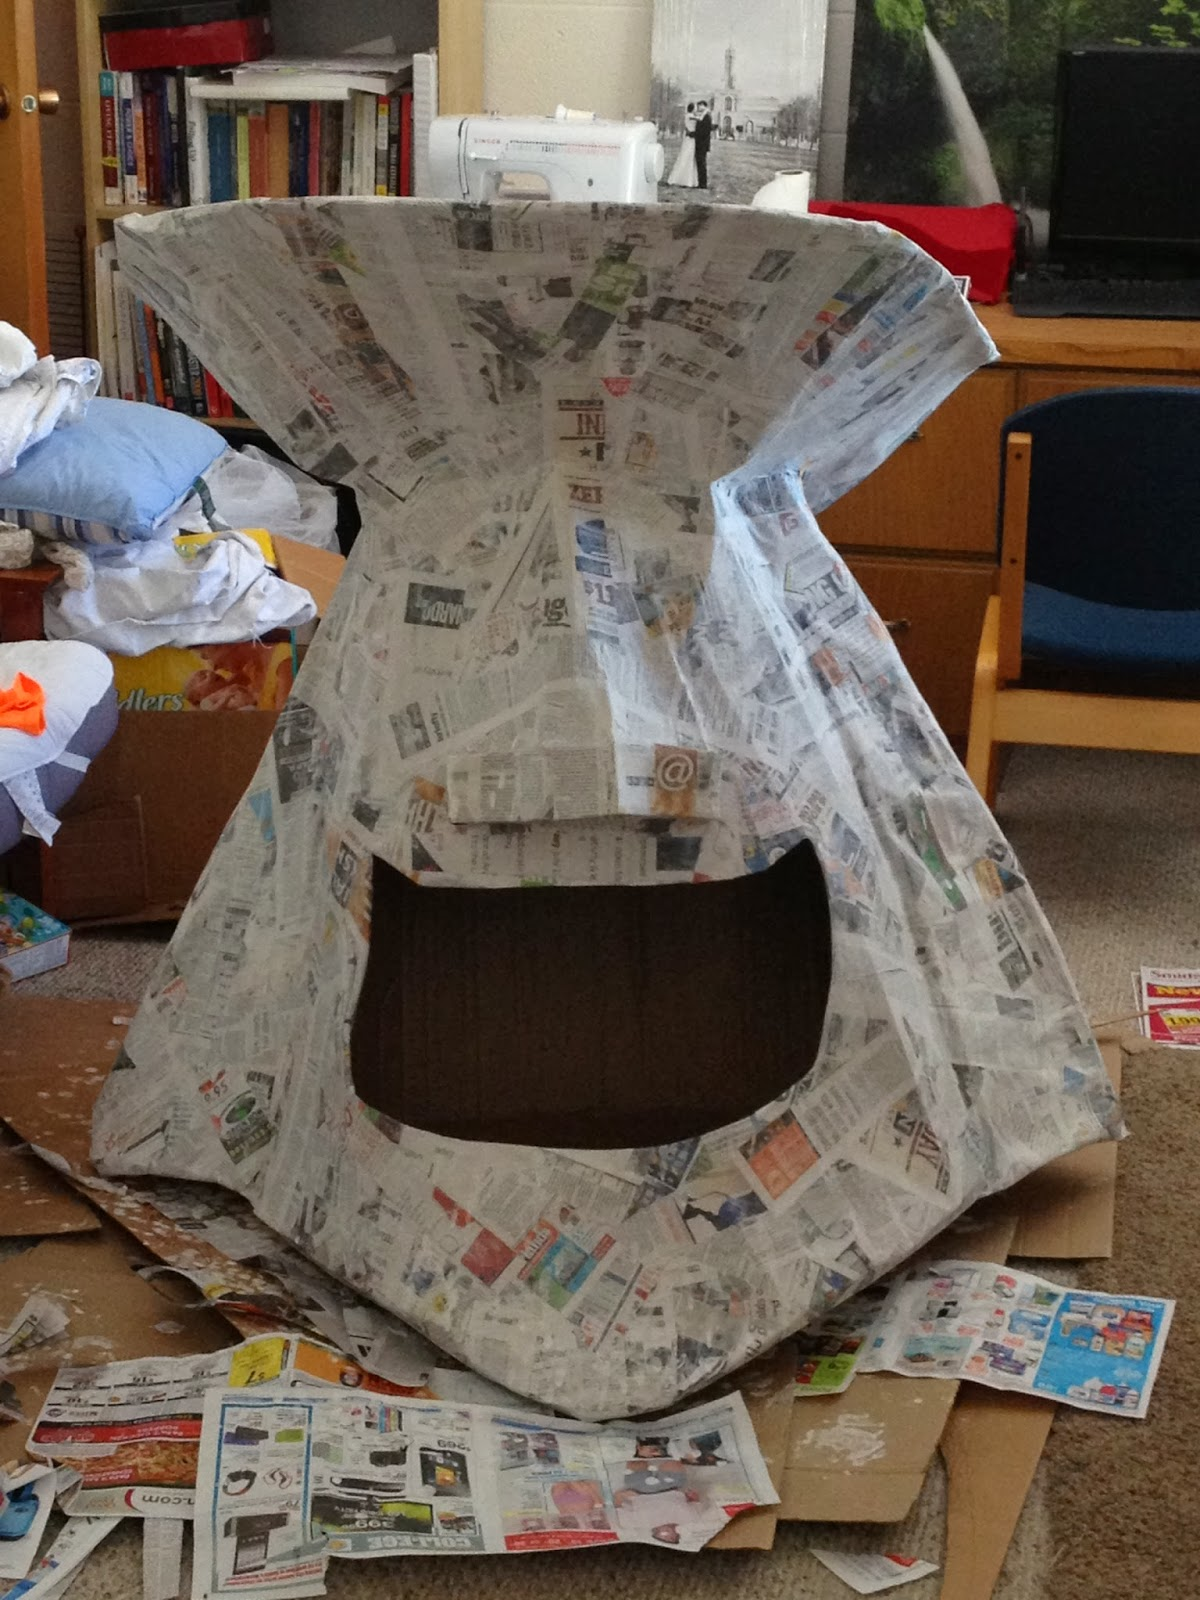 Spencer 39 s crazy artistic life adventure giant paper mache for Paper mache structure